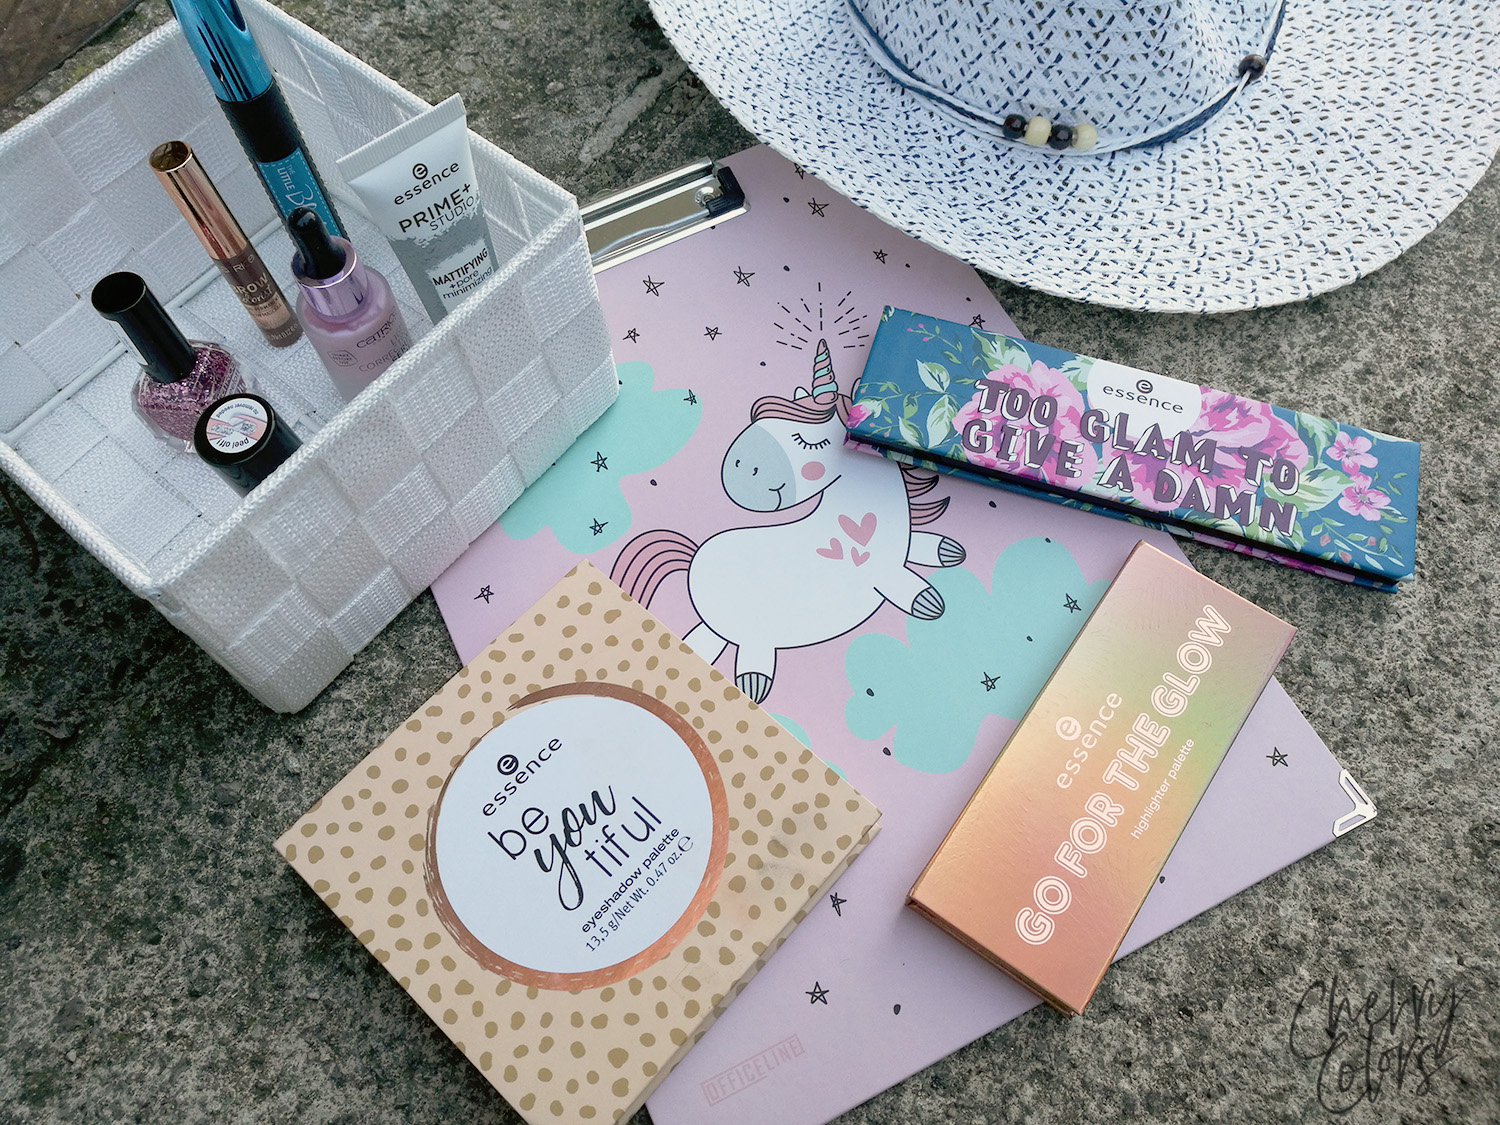 ESSENCE & CATRICE NEW PRODUCTS 2018